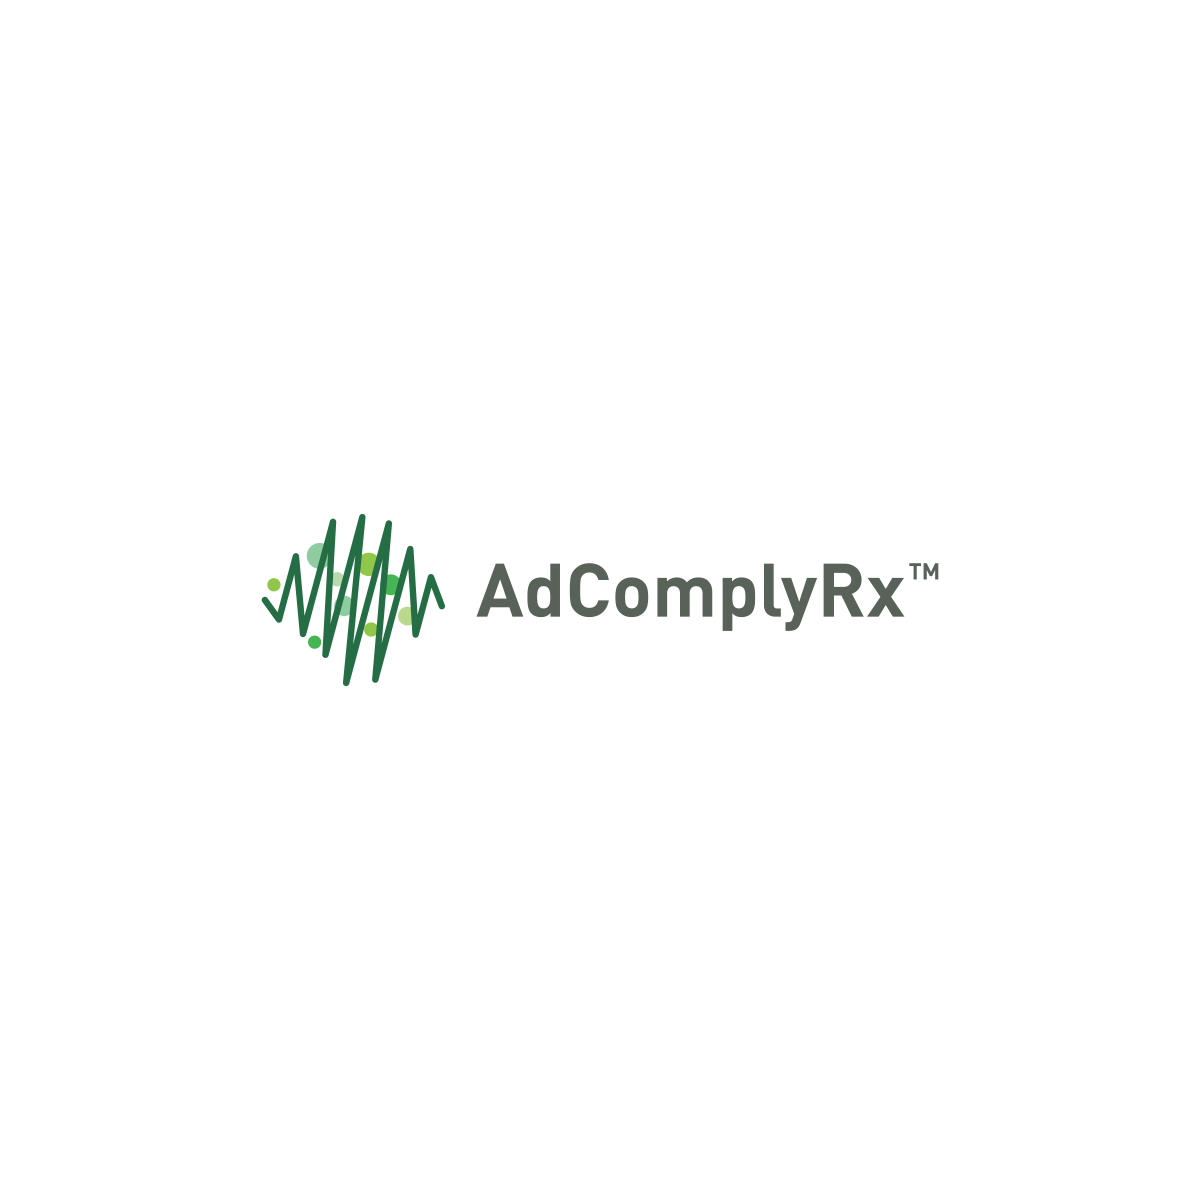 AdComplyRx(tm) Logo Designed - Based on Auctionalysis(tm) Logo Design